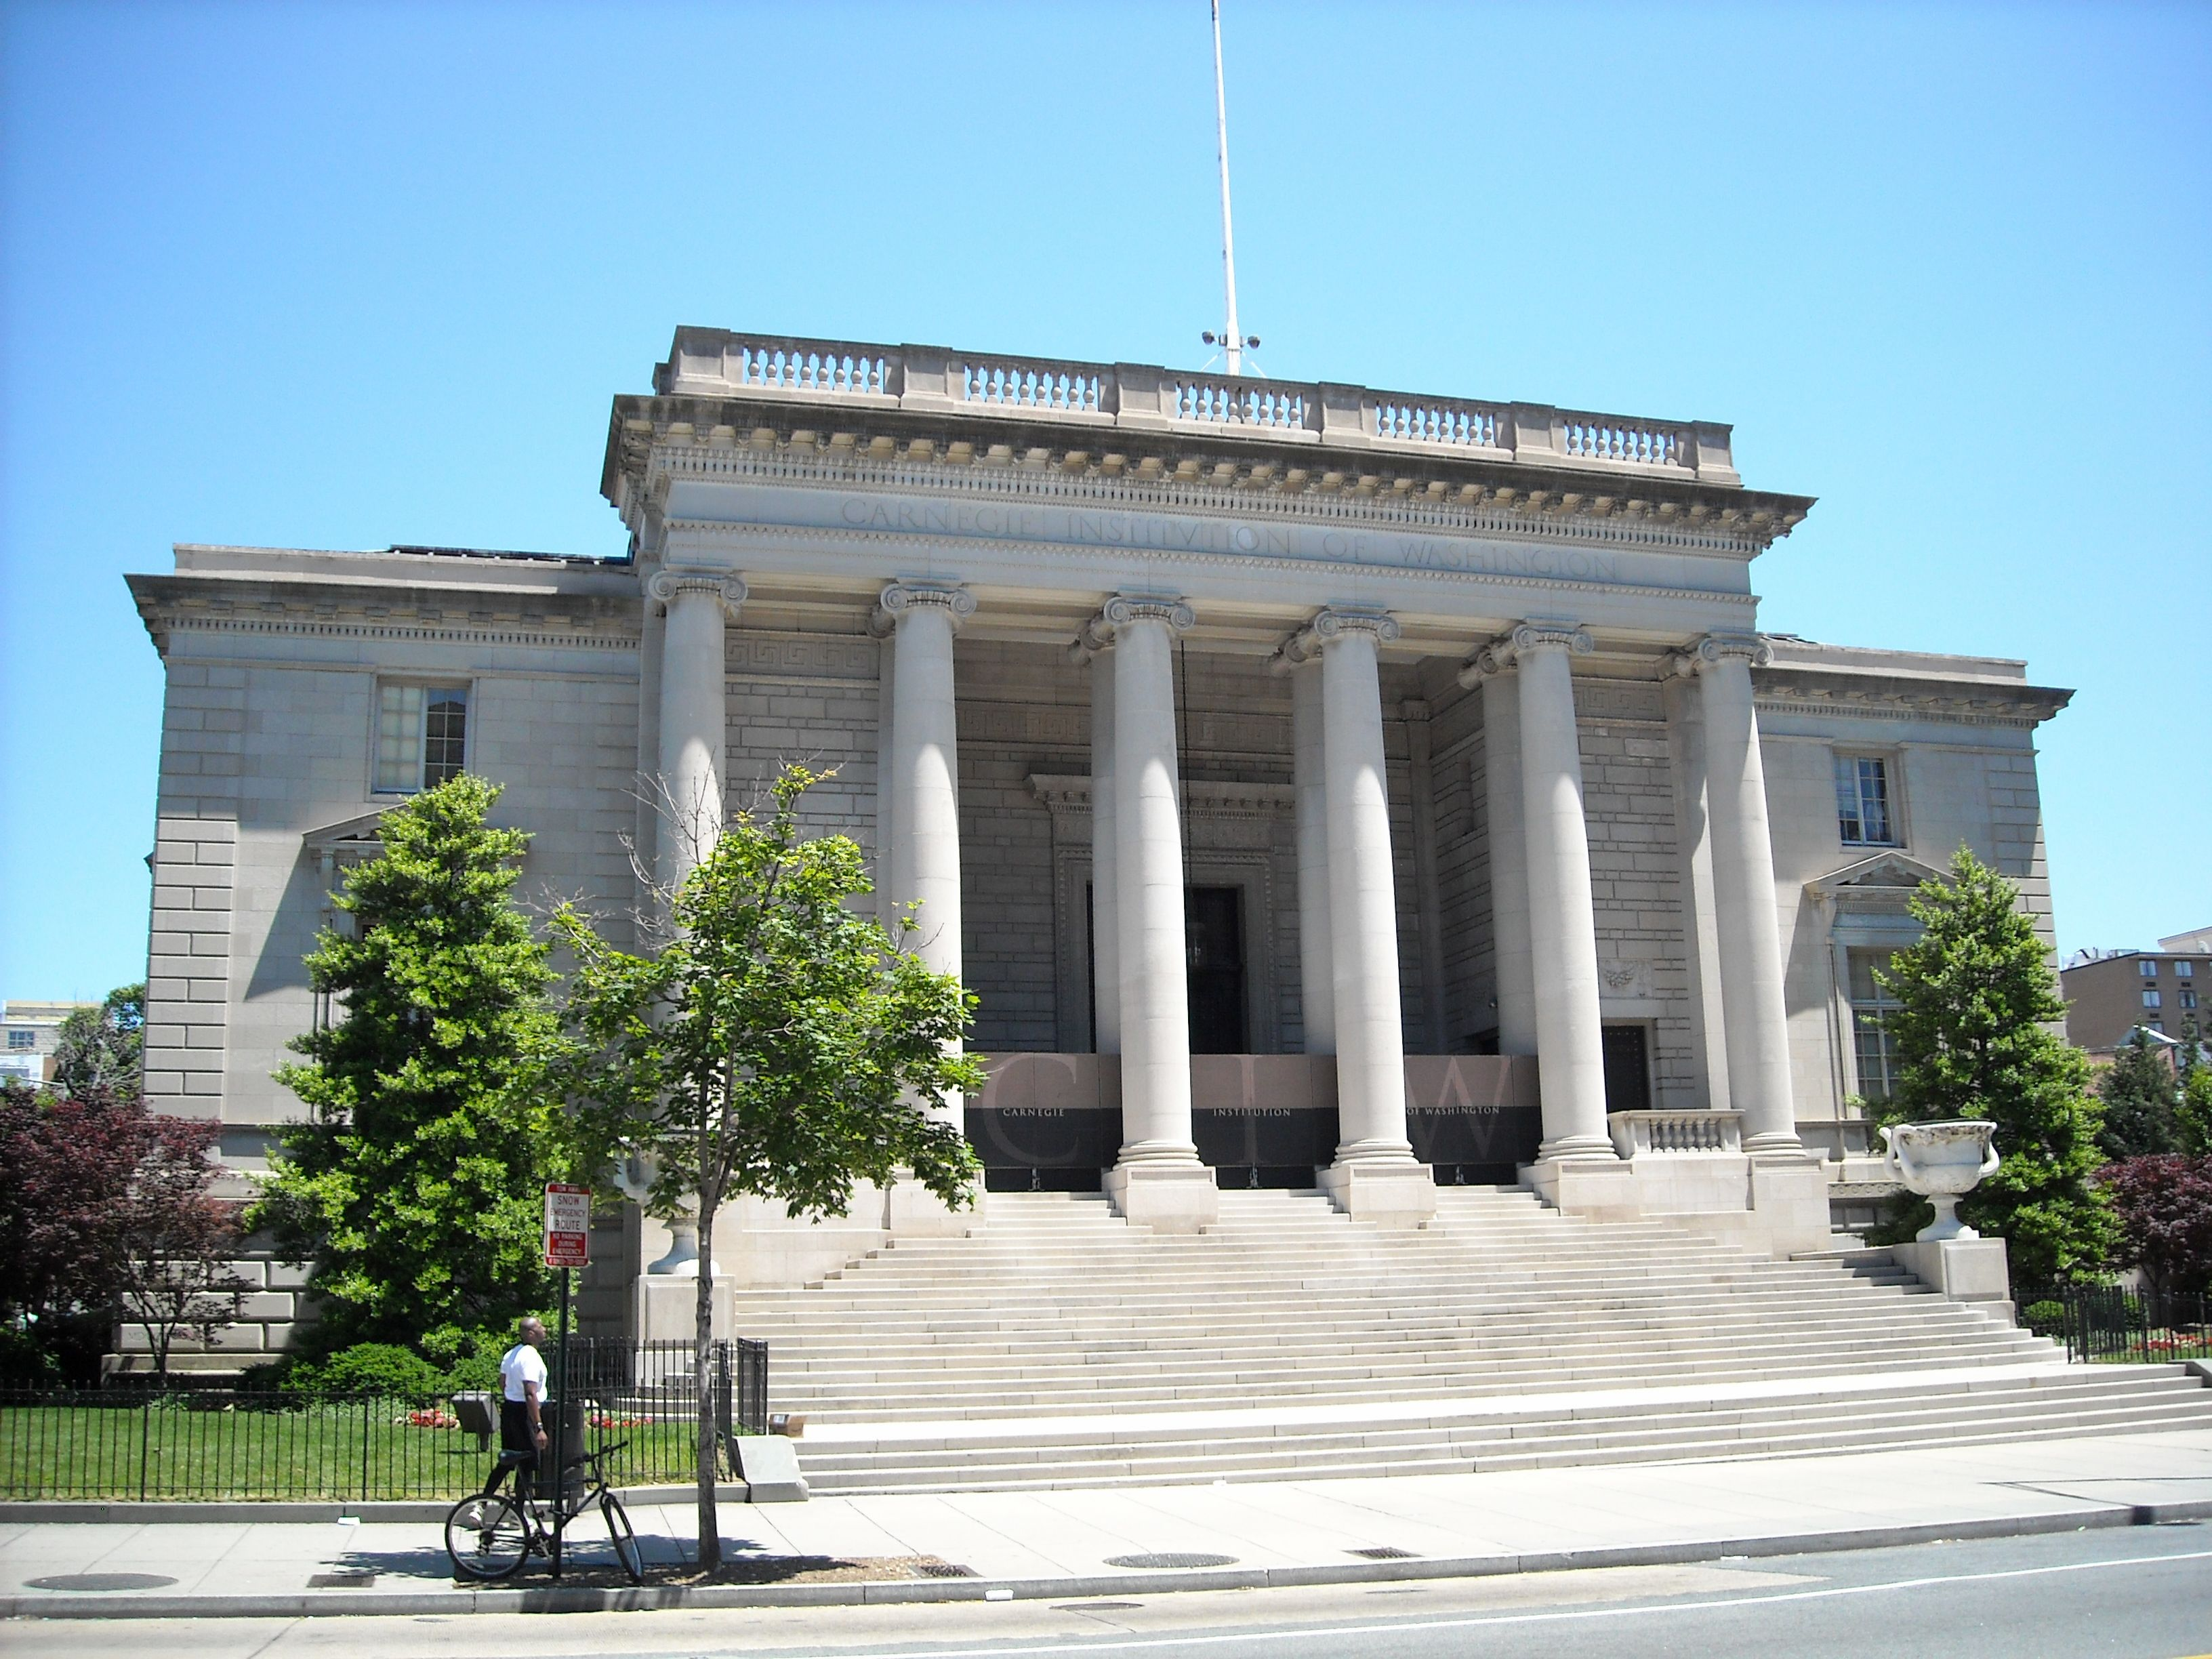 The Administration Building, Carnegie Institution of Science in Washington D.C. is a National Historic Landmark. It is home to scientific research and discovery and is a popular event venue.